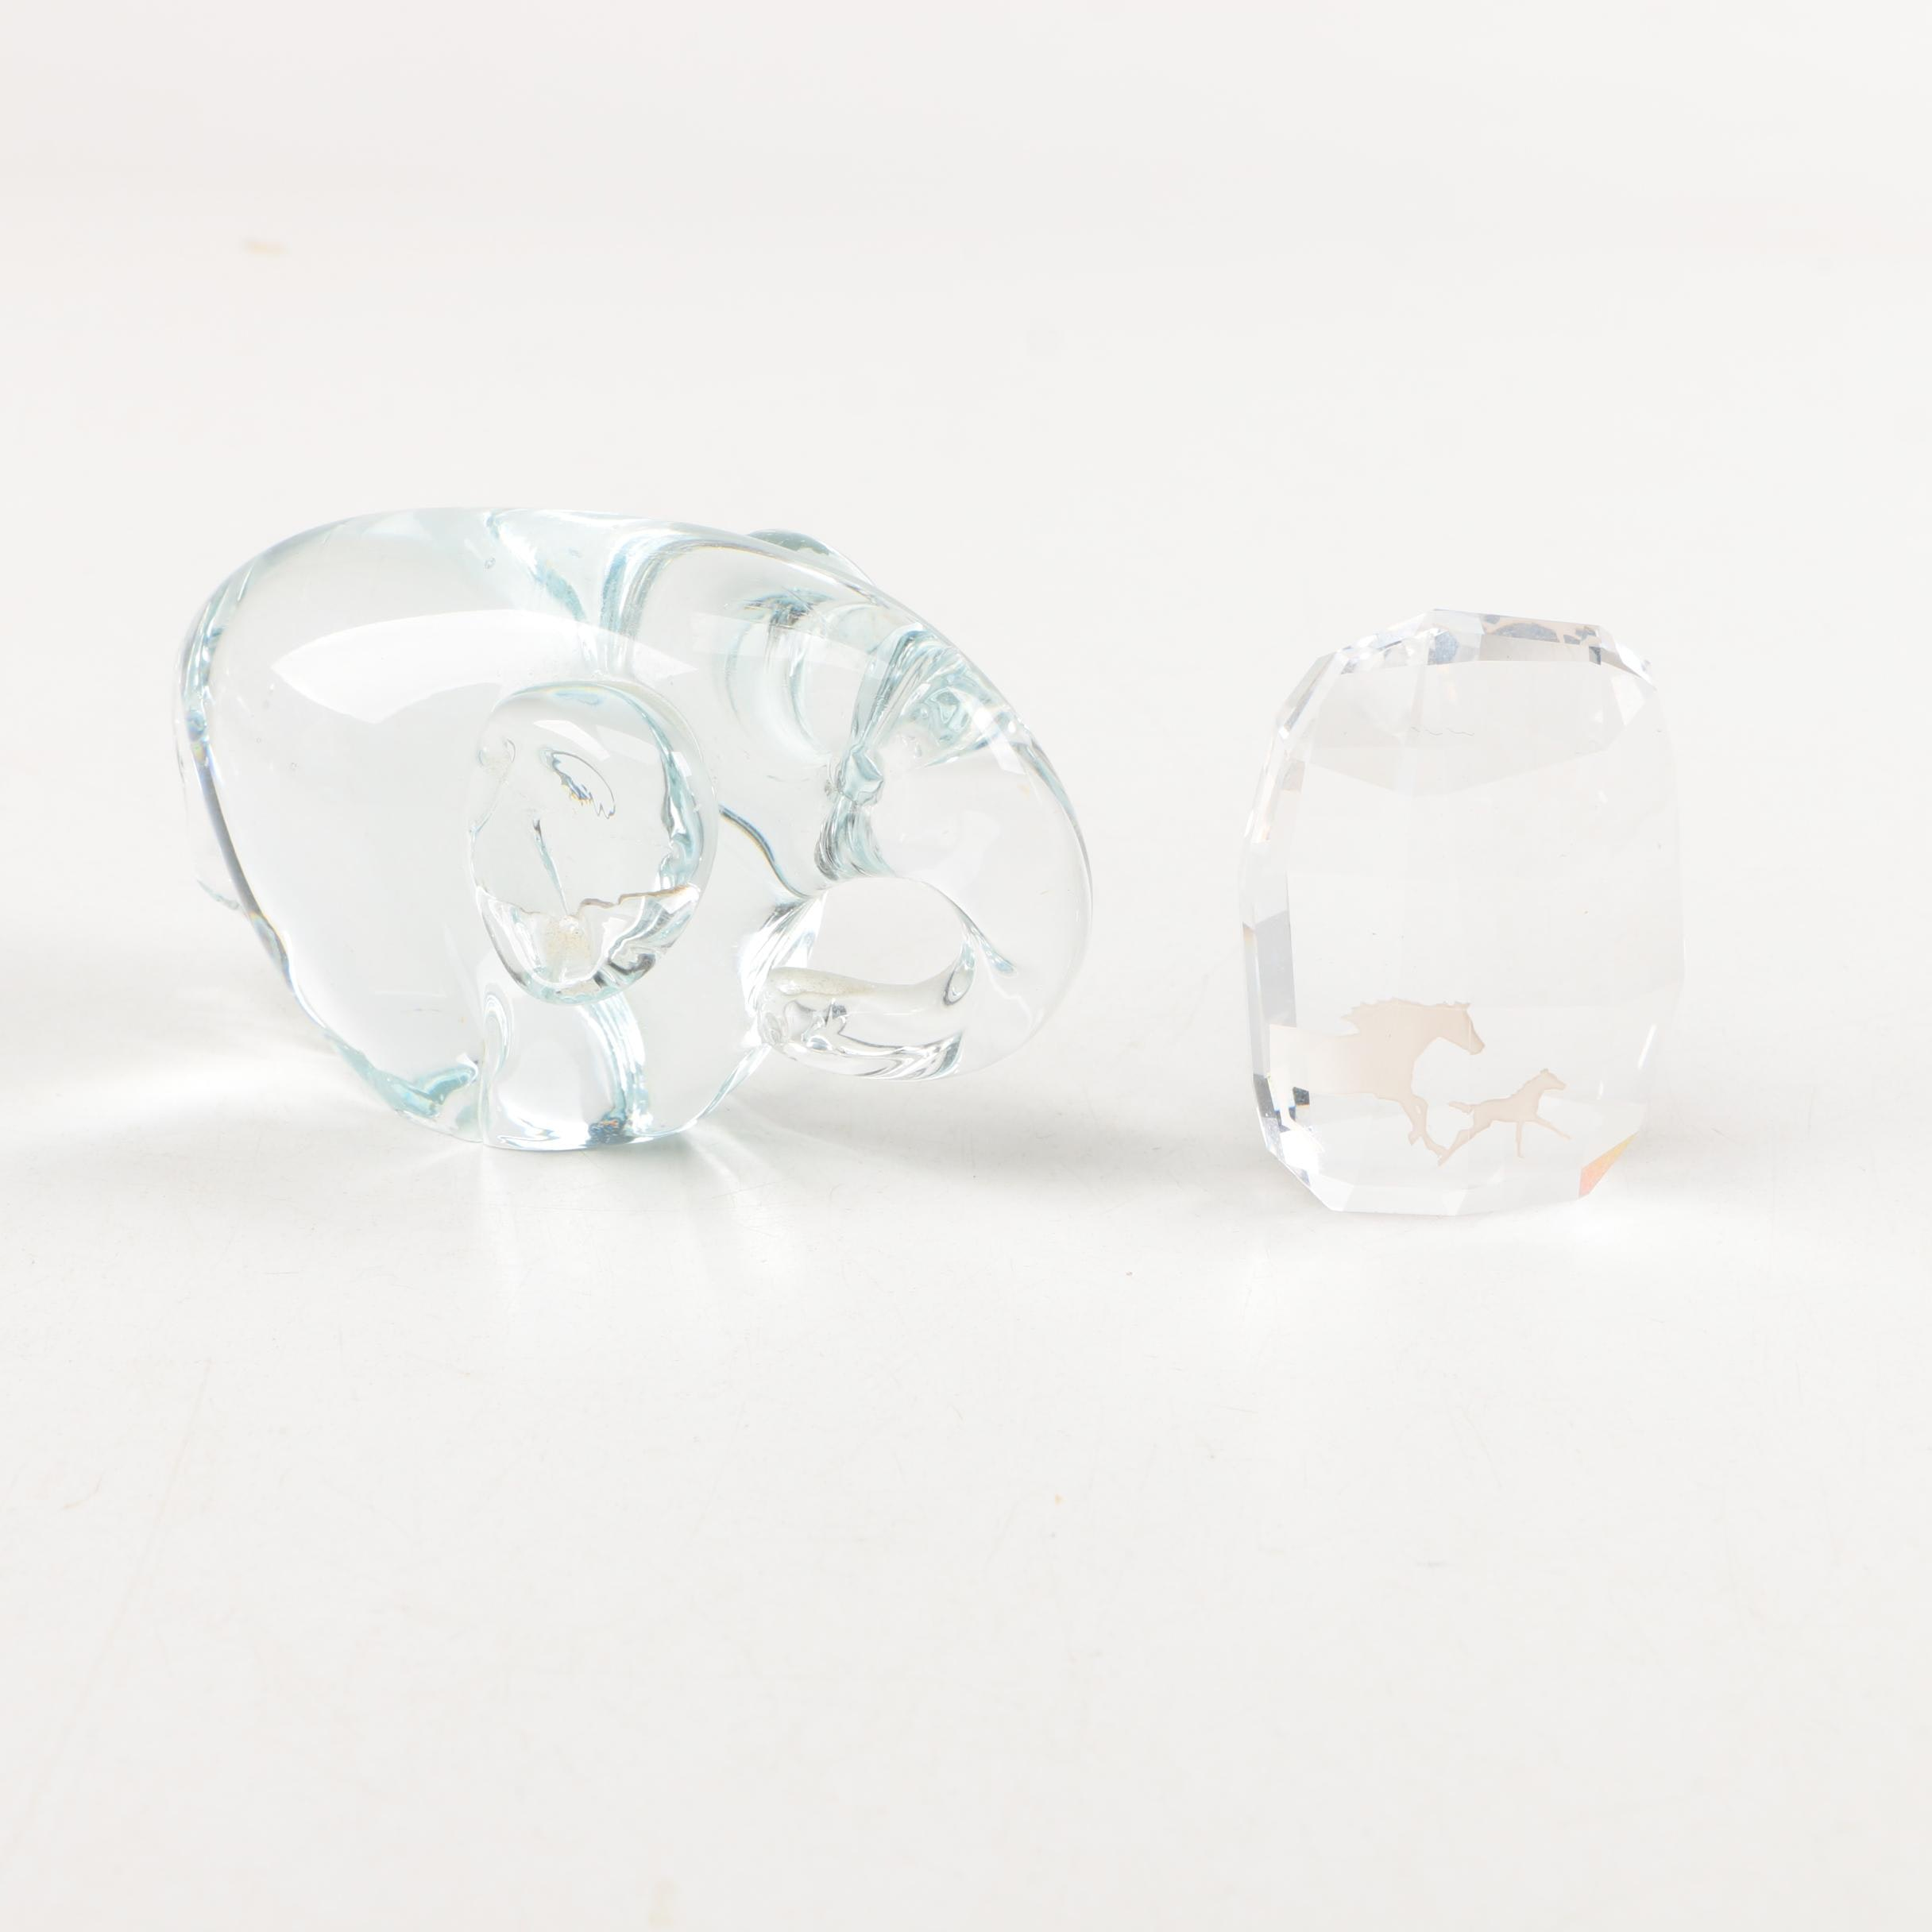 Crystal Elephant Figurine and Horse Paperweight